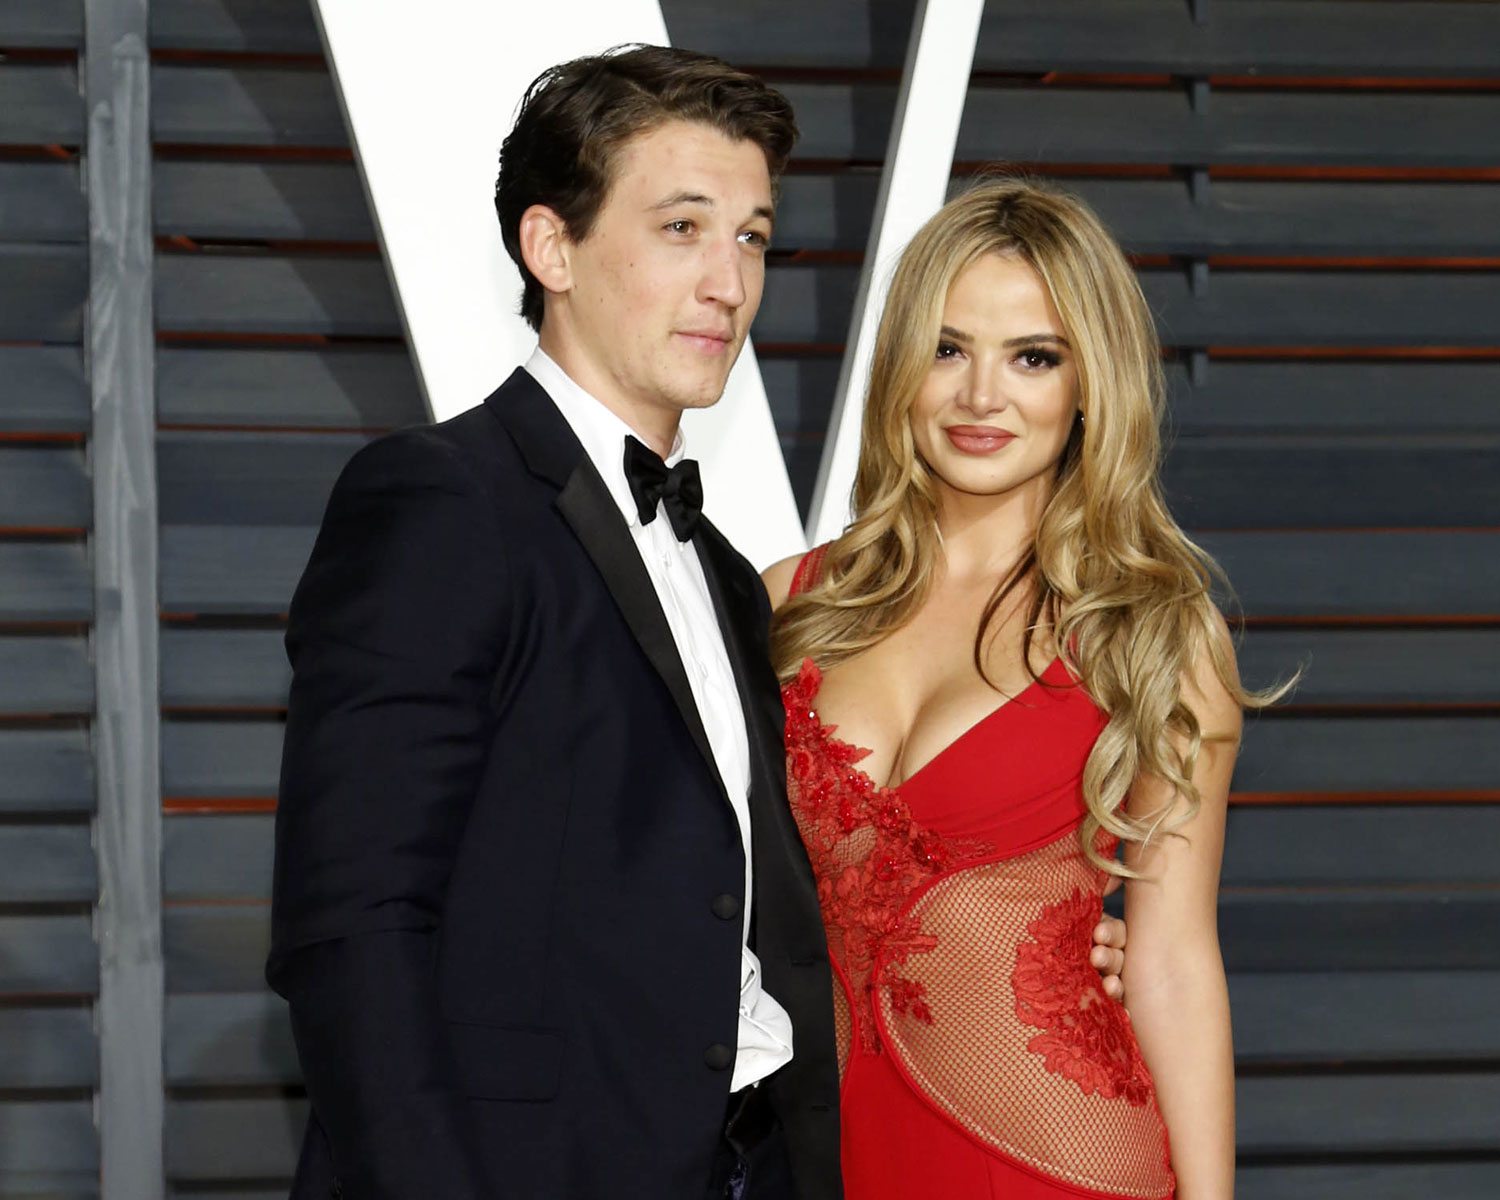 Miles Teller Is Engaged to Keleigh Sperry: See Her Ring